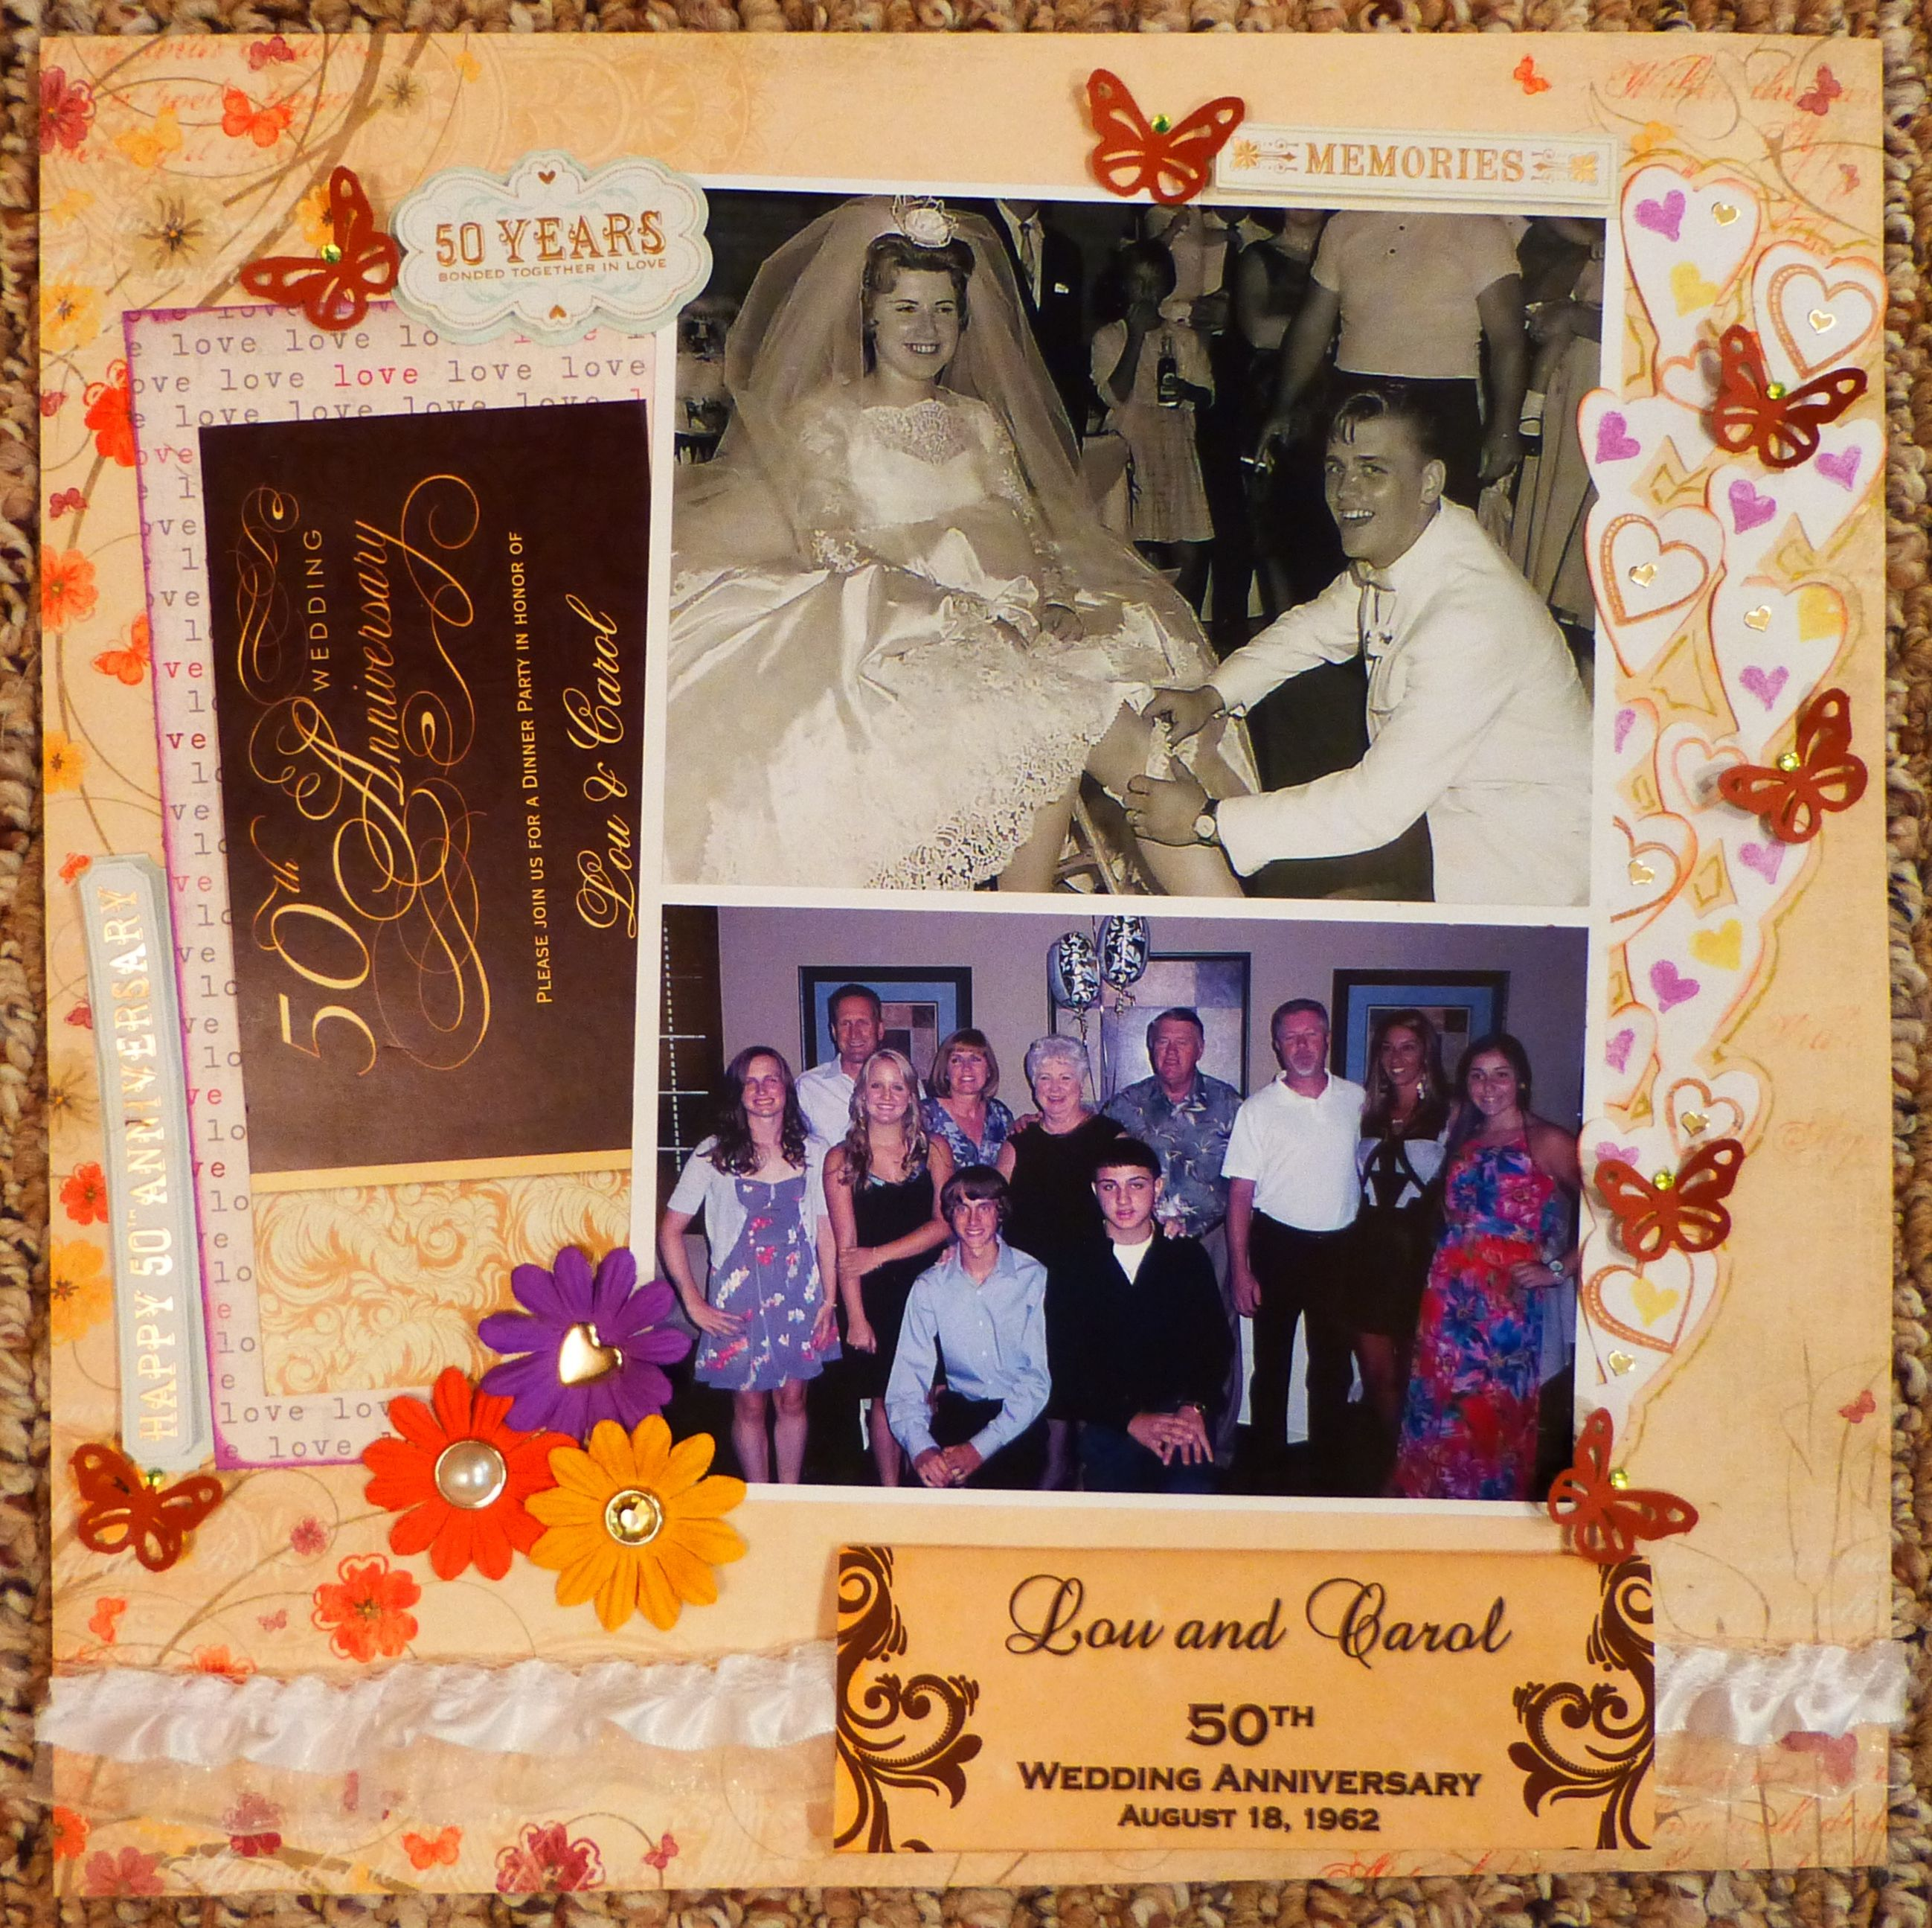 Family scrapbook ideas on pinterest - 50 Th Anniversary Scrapbook Com Remember To Use Mom Dad S Wedding Pic With